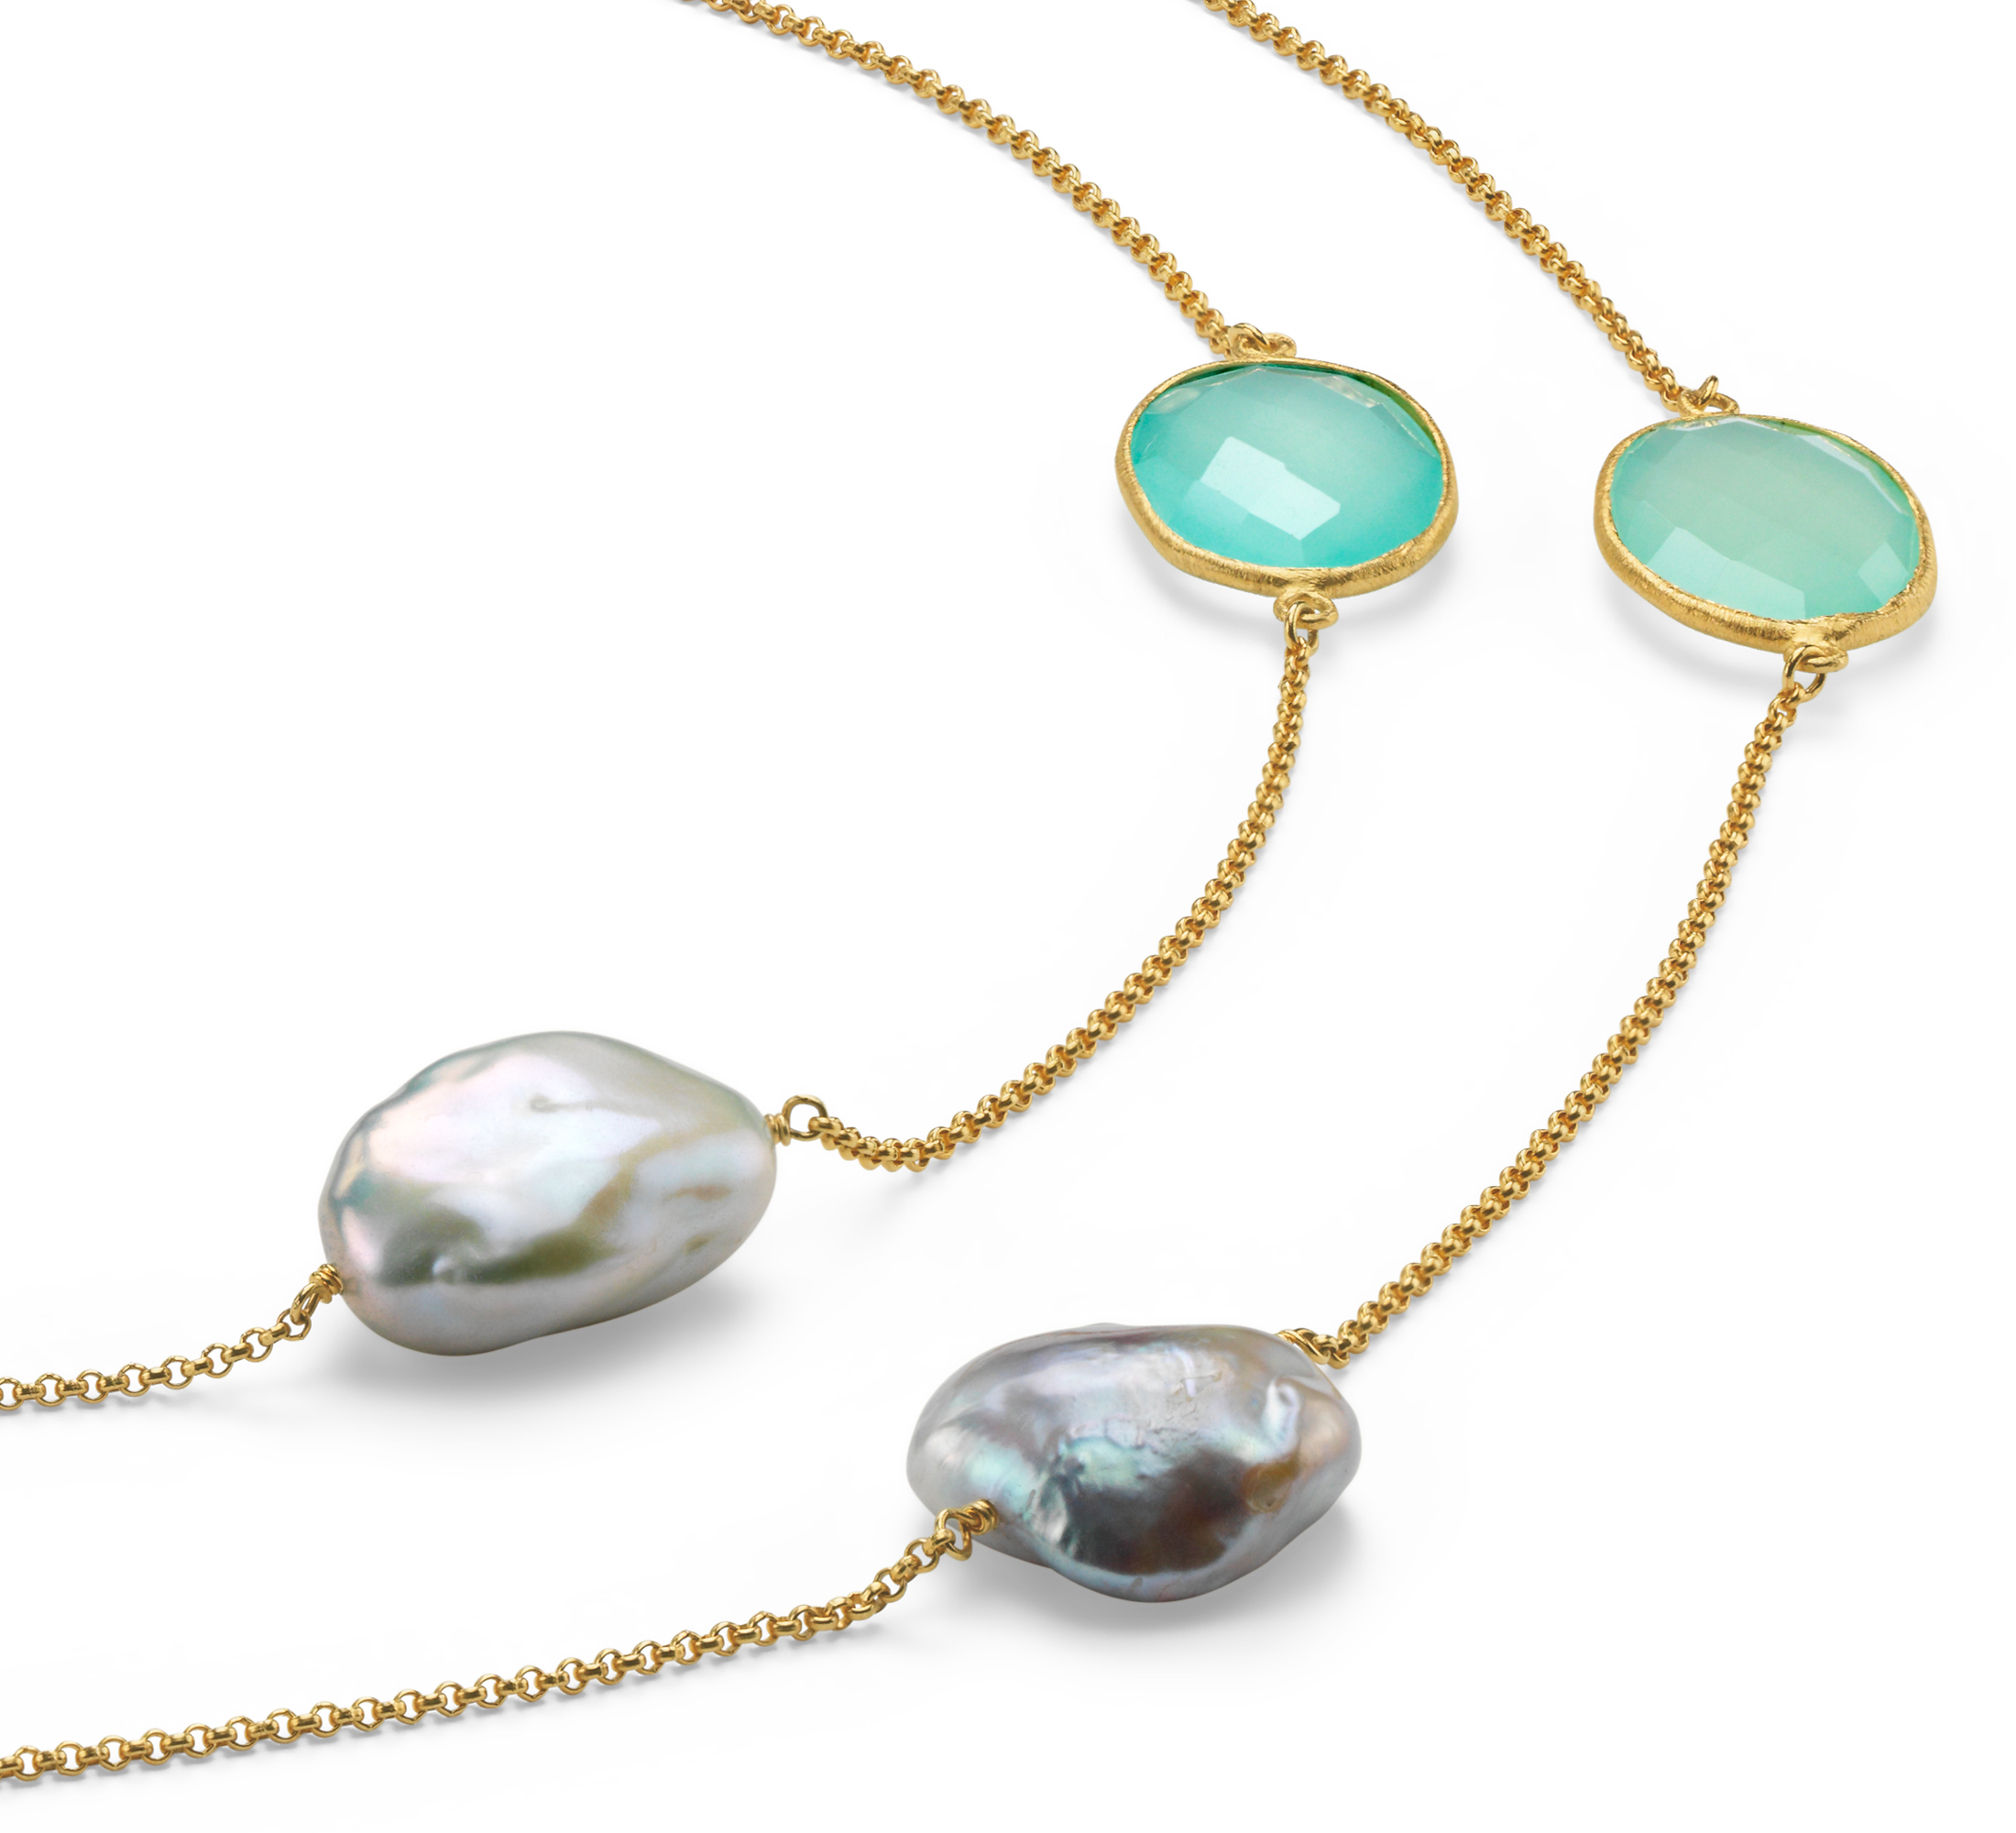 Chalcedony and Freshwater Cultured Pearl Necklace in Gold Vermeil